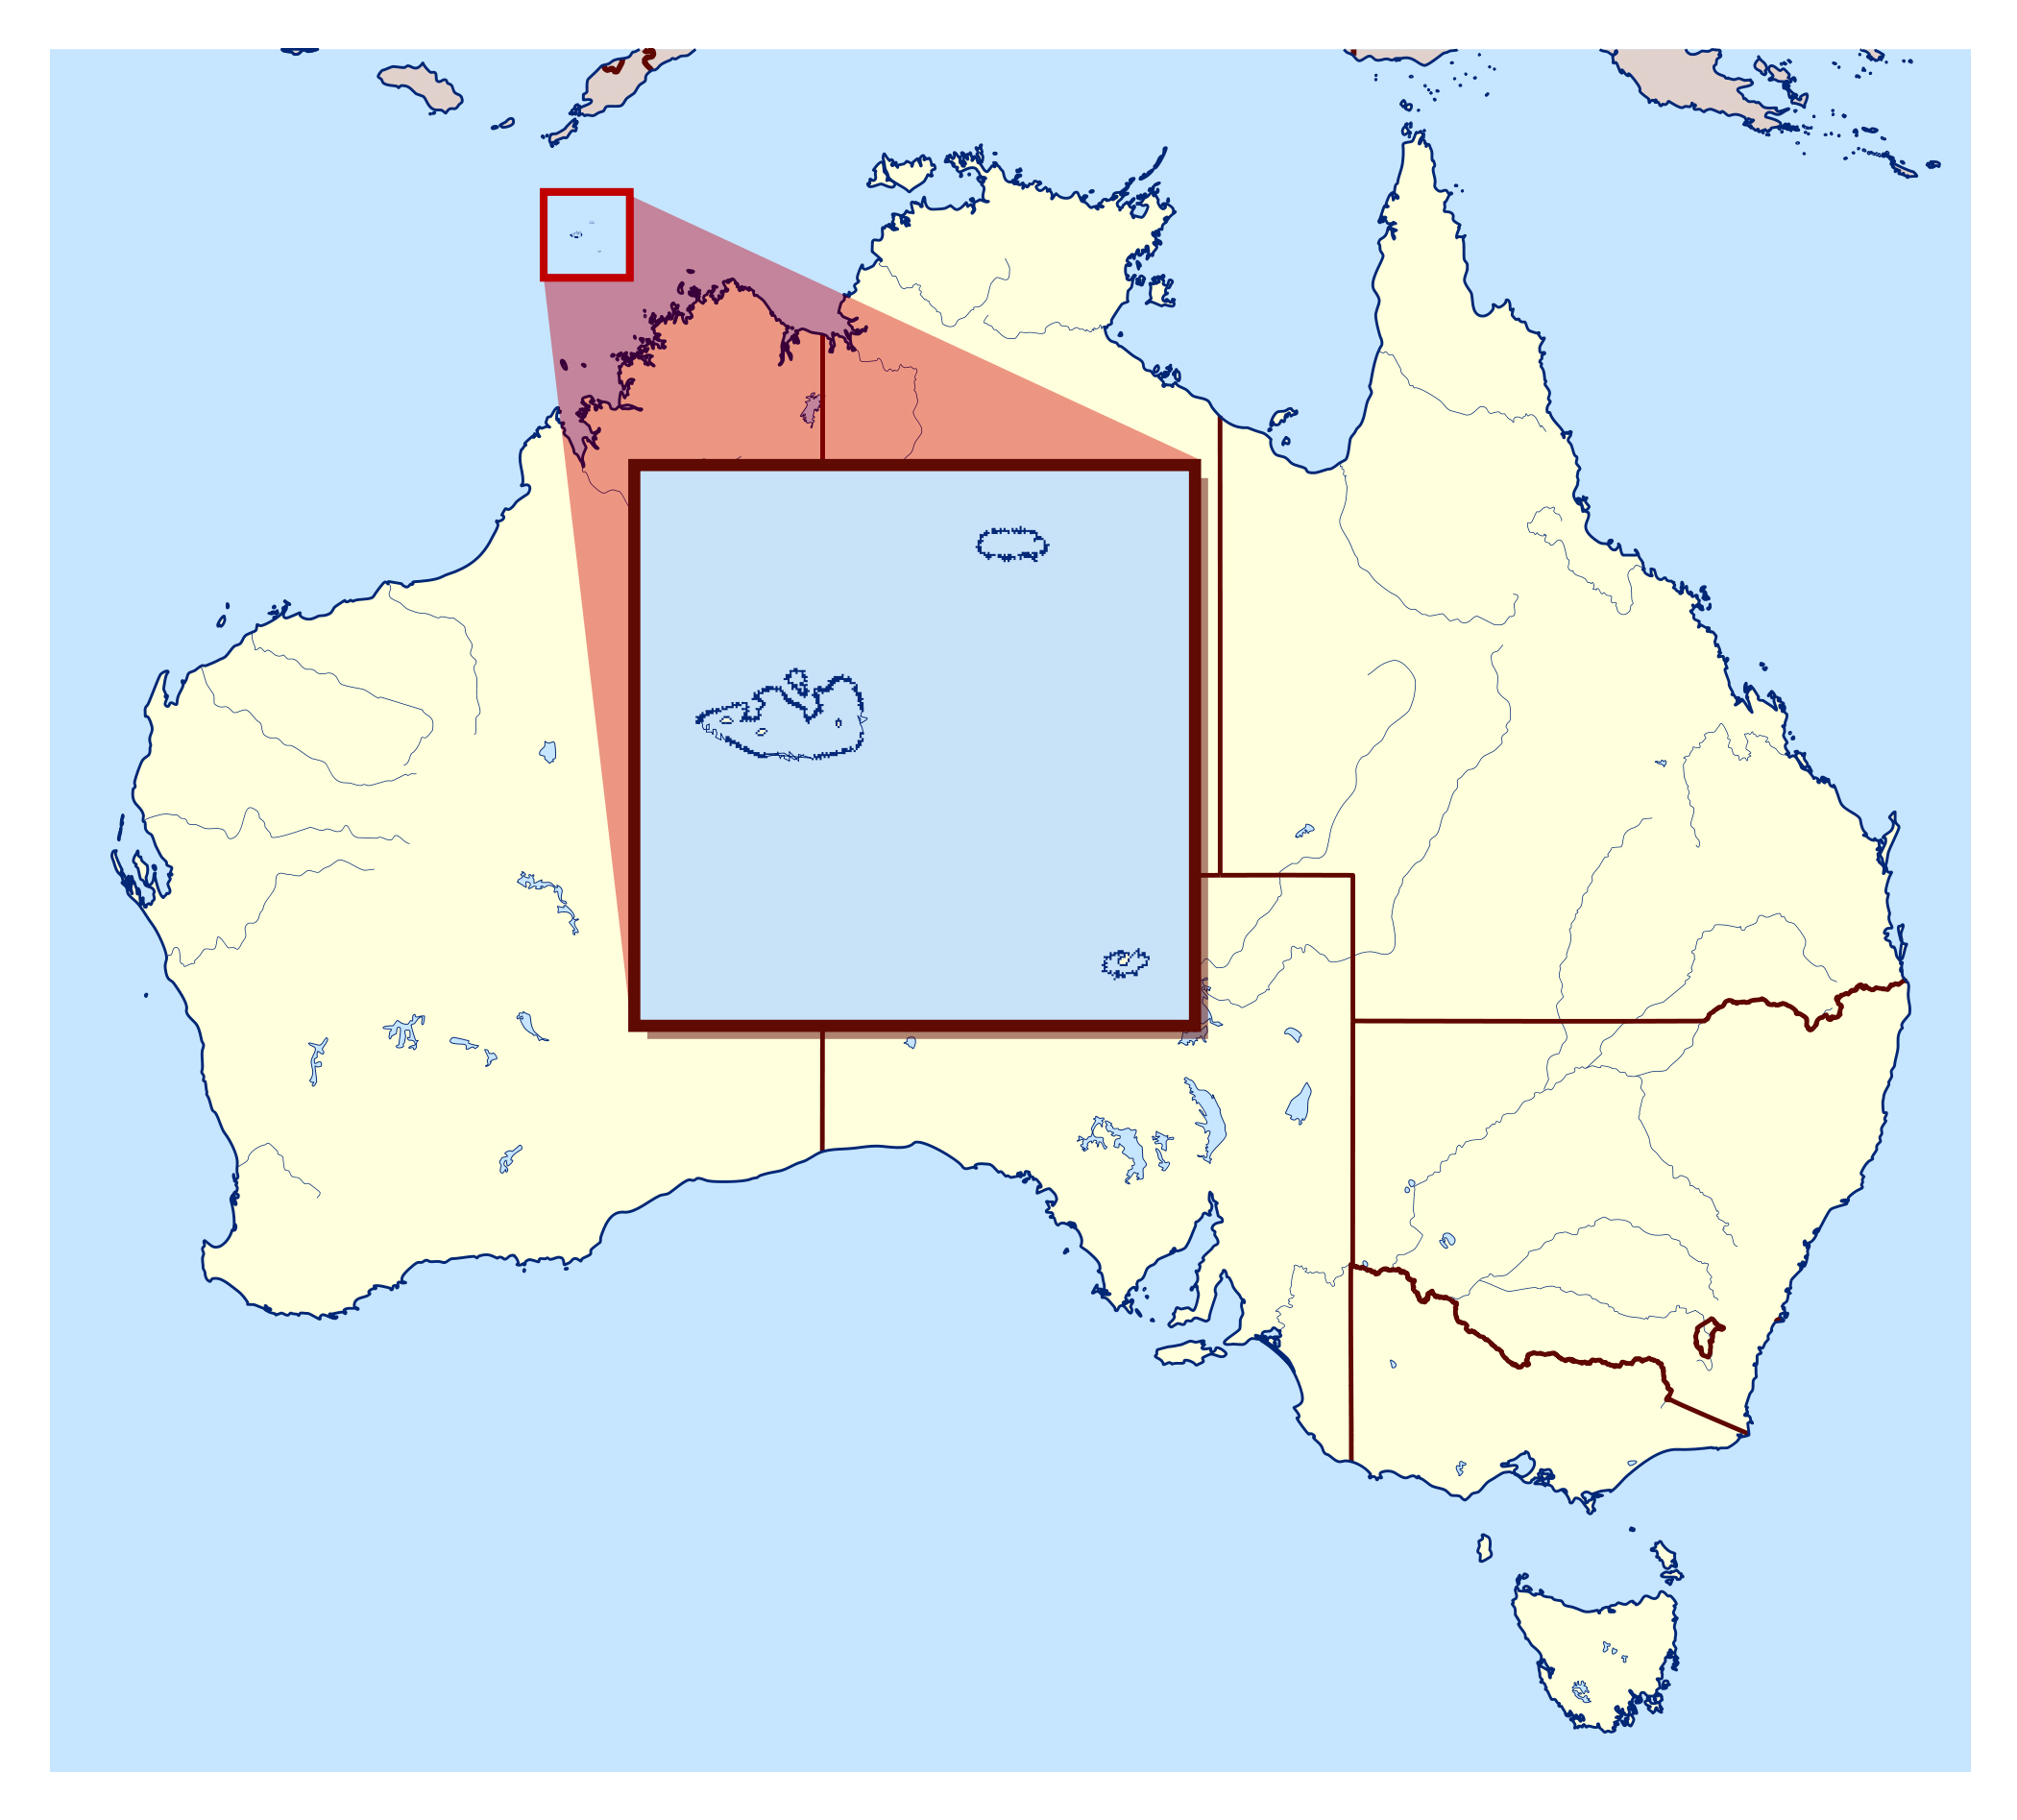 Australia Location Map.Large Location Map Of Ashmore And Cartier Islands In Australia